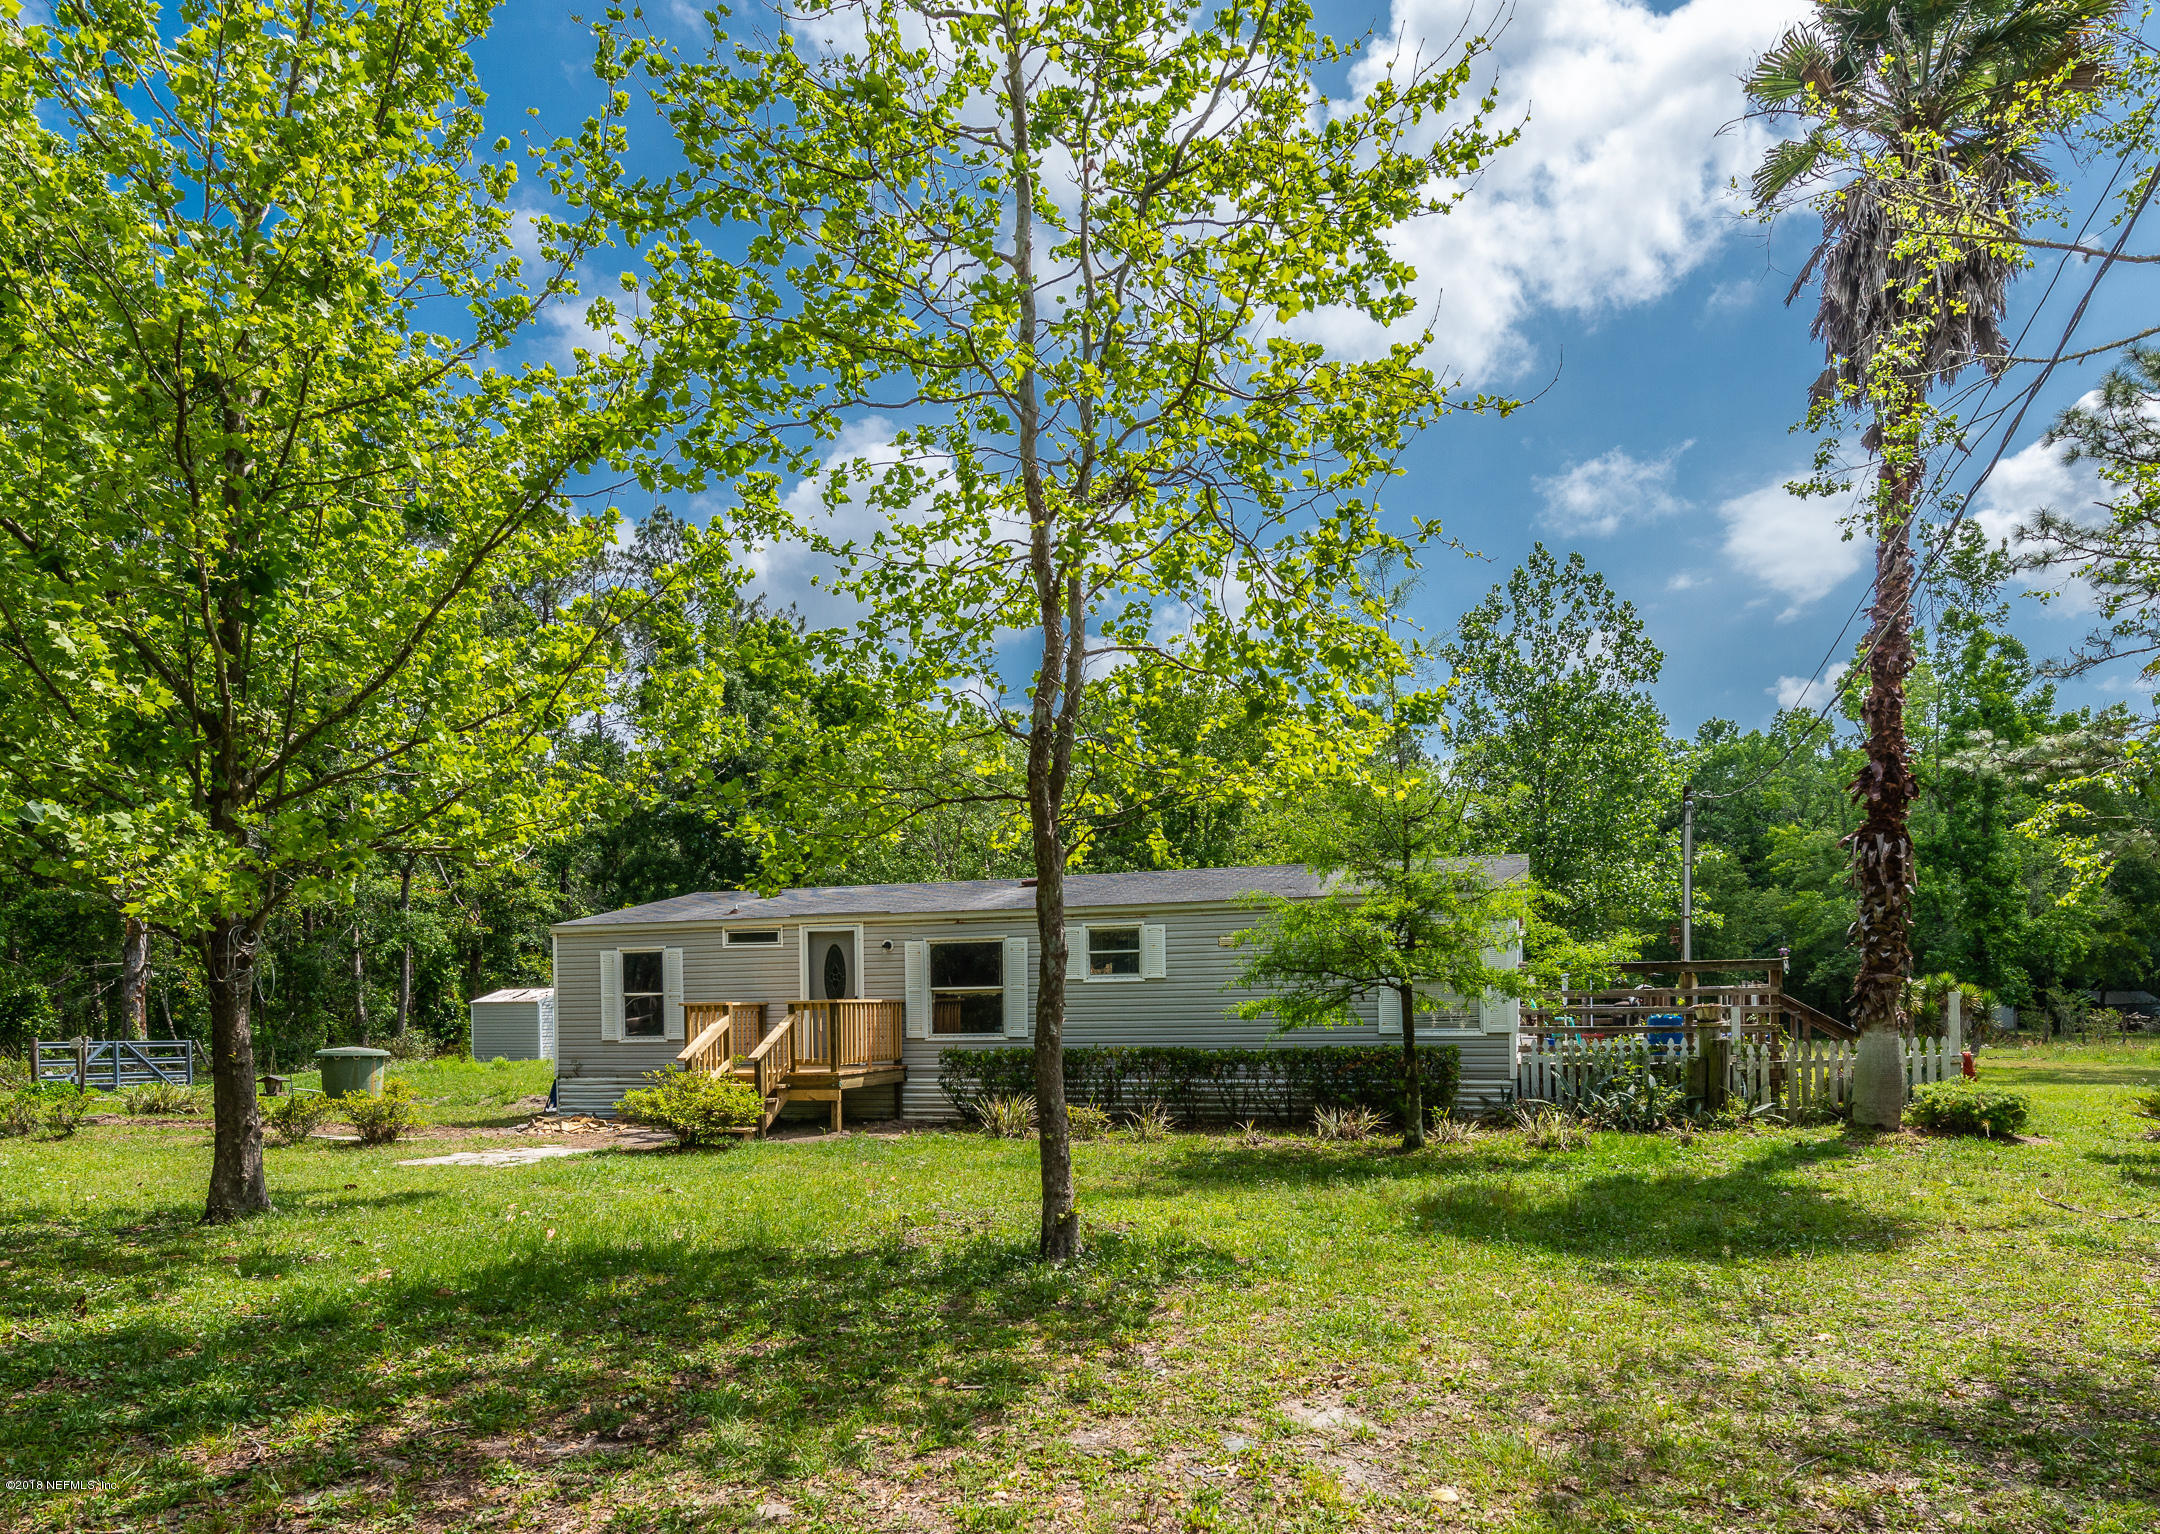 2830 JOE ASHTON, ST AUGUSTINE, FLORIDA 32092, 3 Bedrooms Bedrooms, ,2 BathroomsBathrooms,Residential - mobile home,For sale,JOE ASHTON,931661